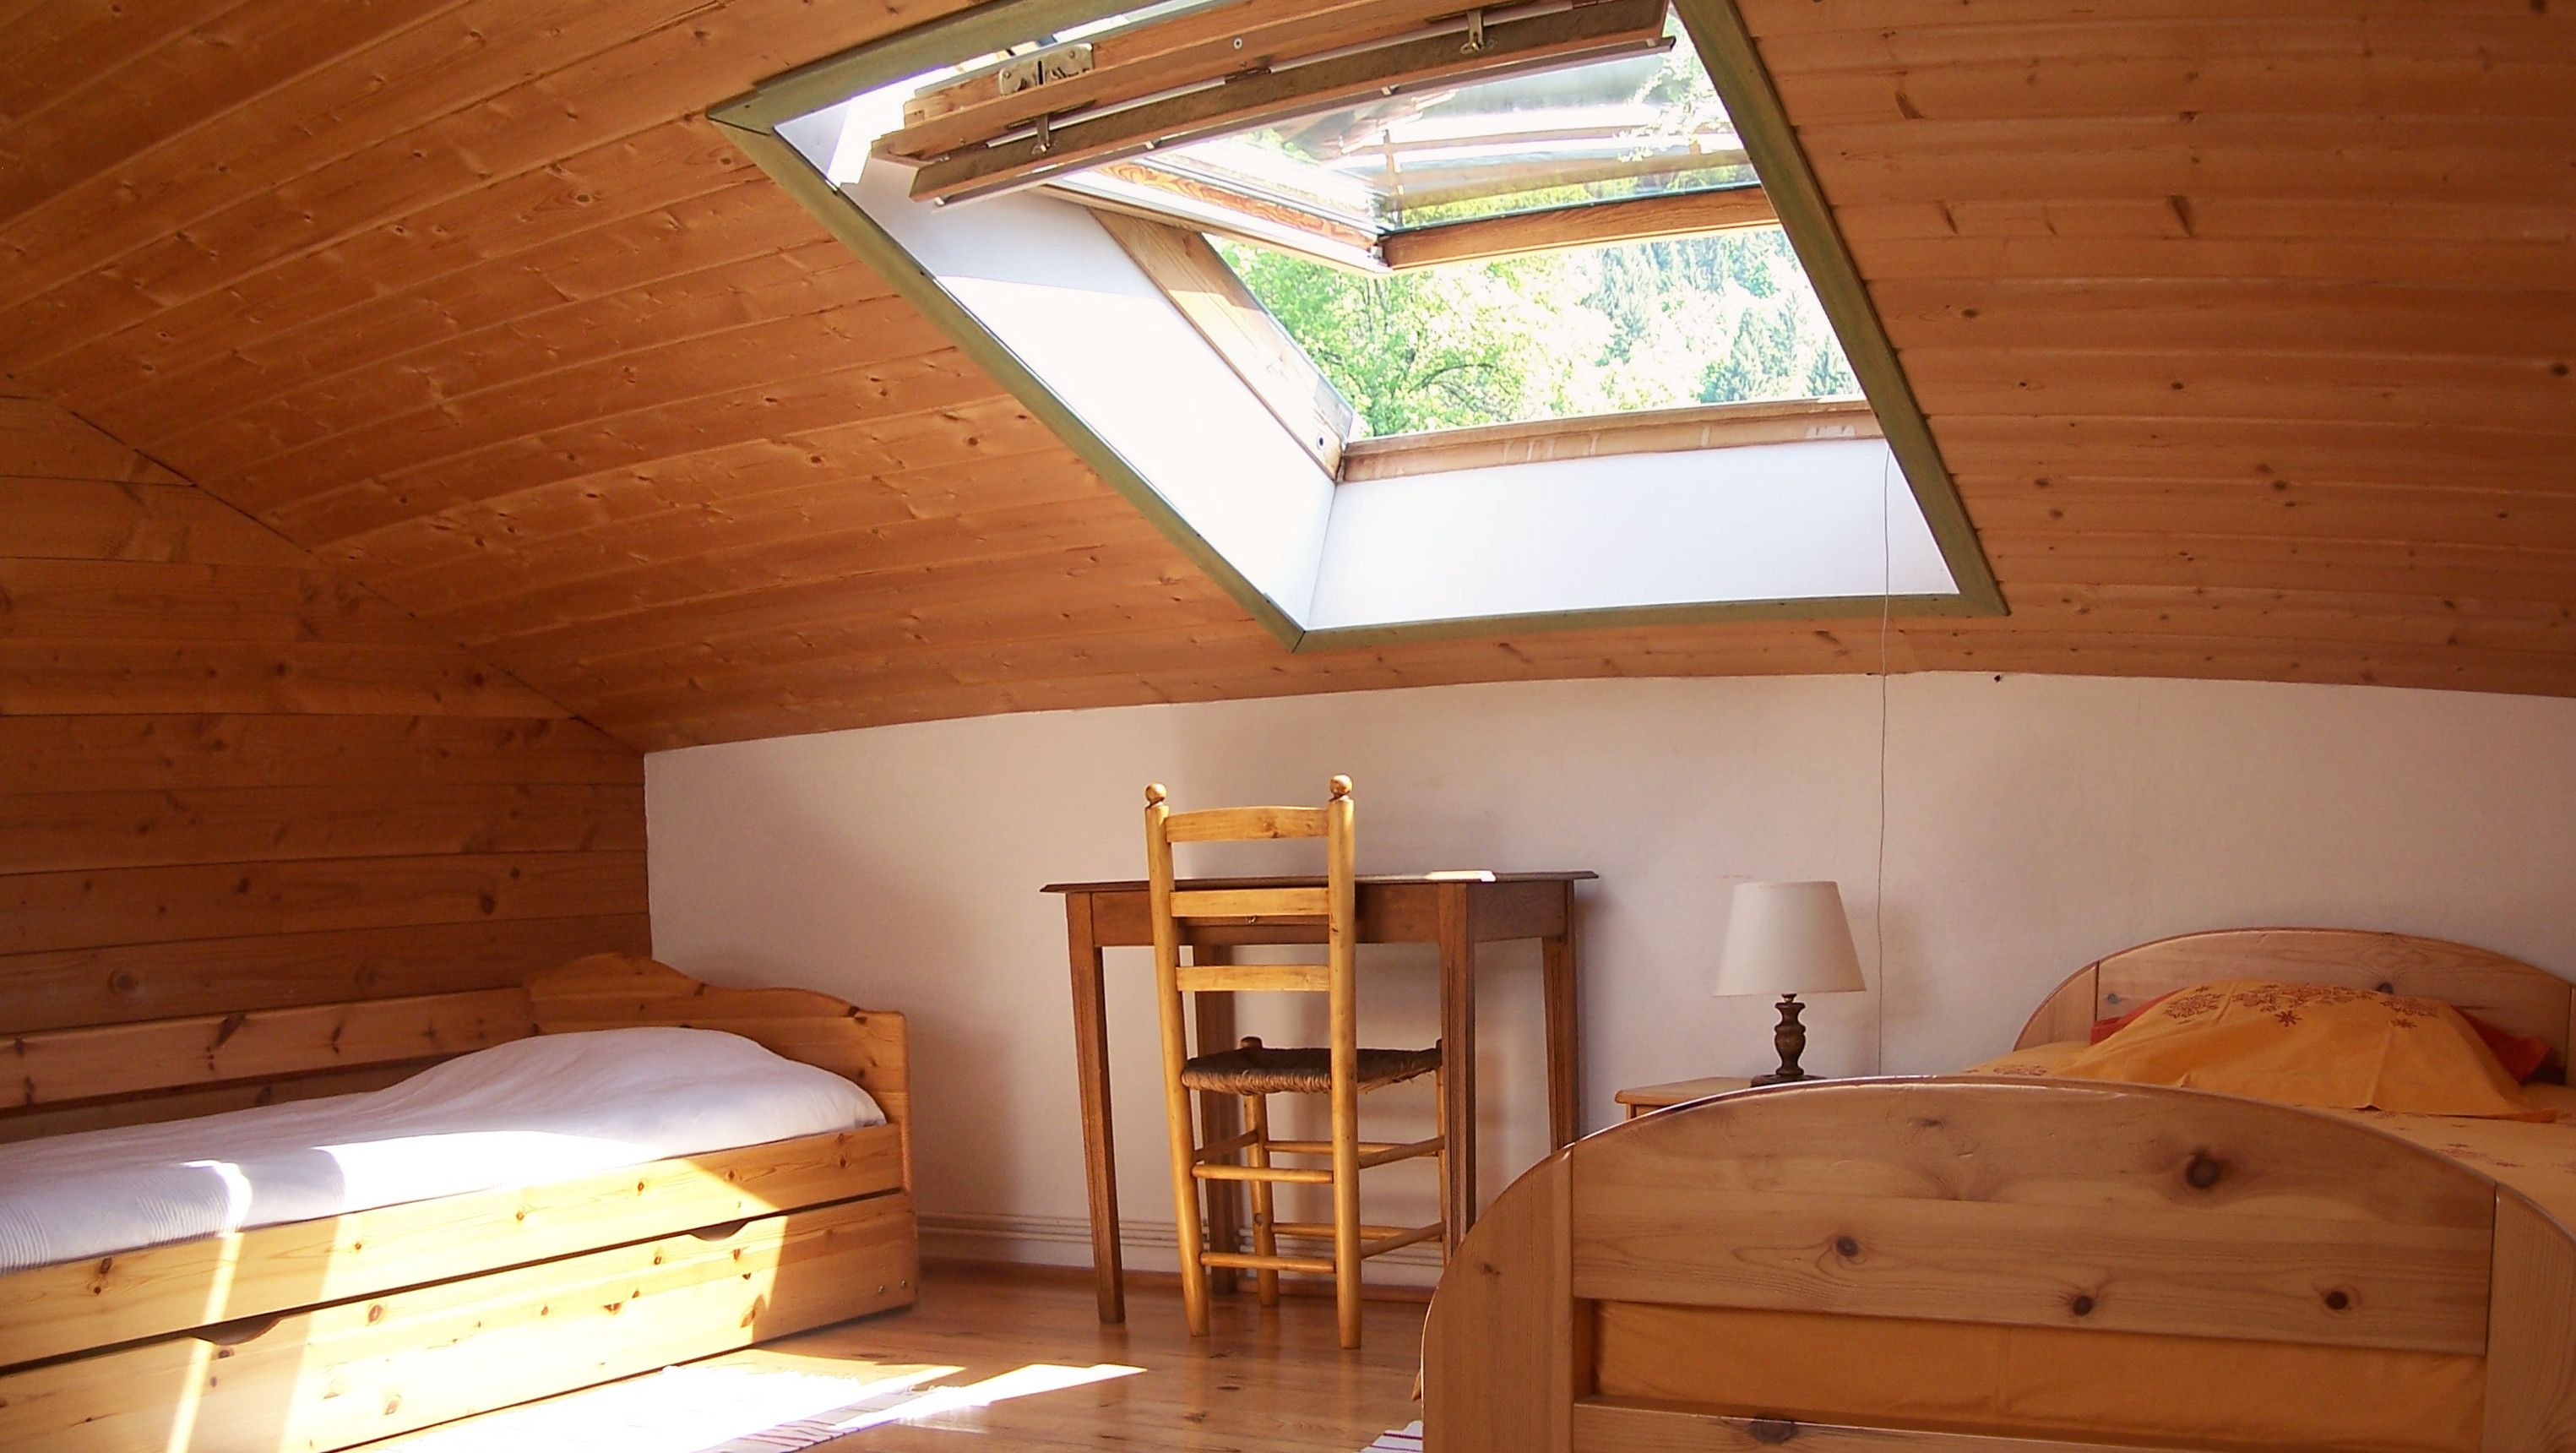 Chambres d'hotes isere, Chambre Belledonne